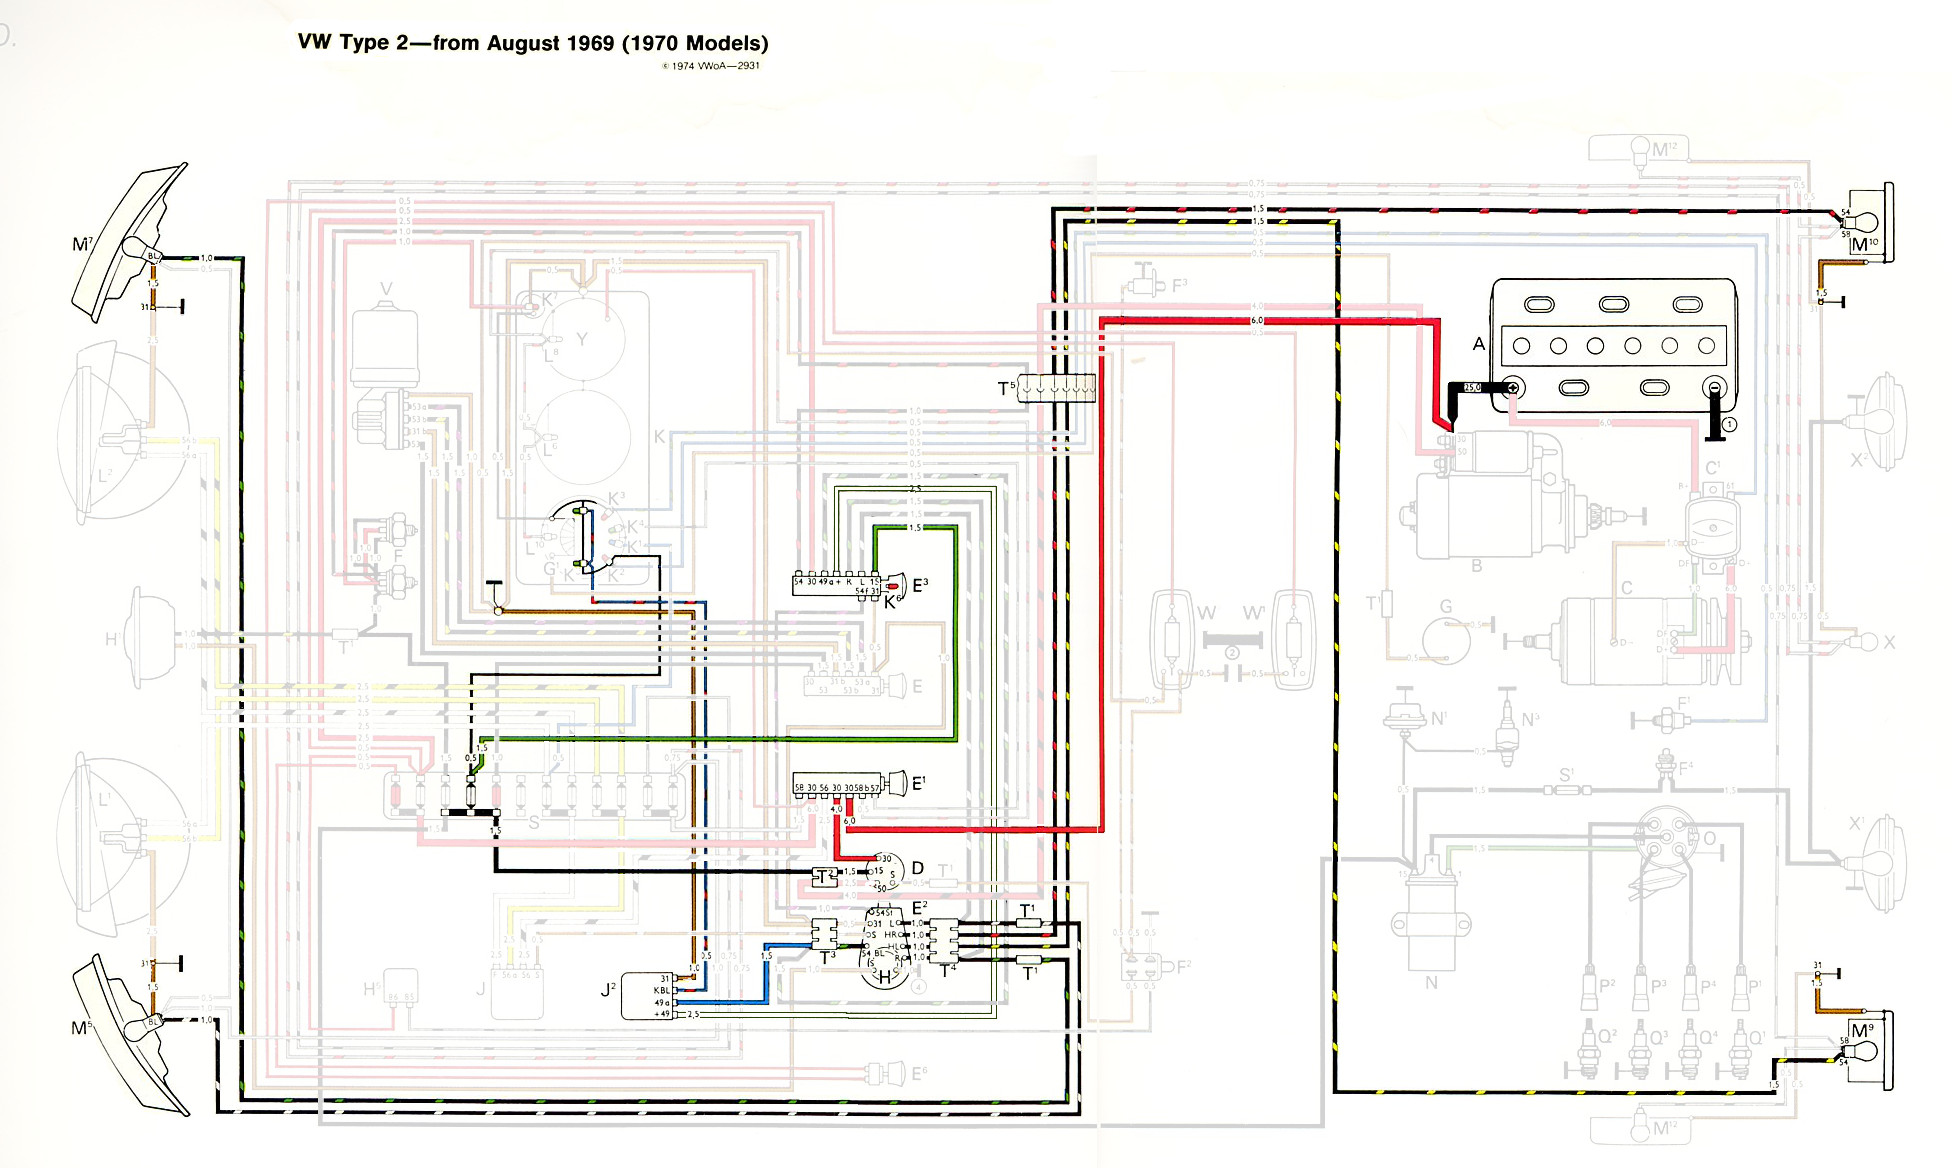 1972 mgb wiring diagram wiring diagramvw bus wiring diagram further vw beetle wiring diagram in additionthesamba com type 2 wiring diagramsvw